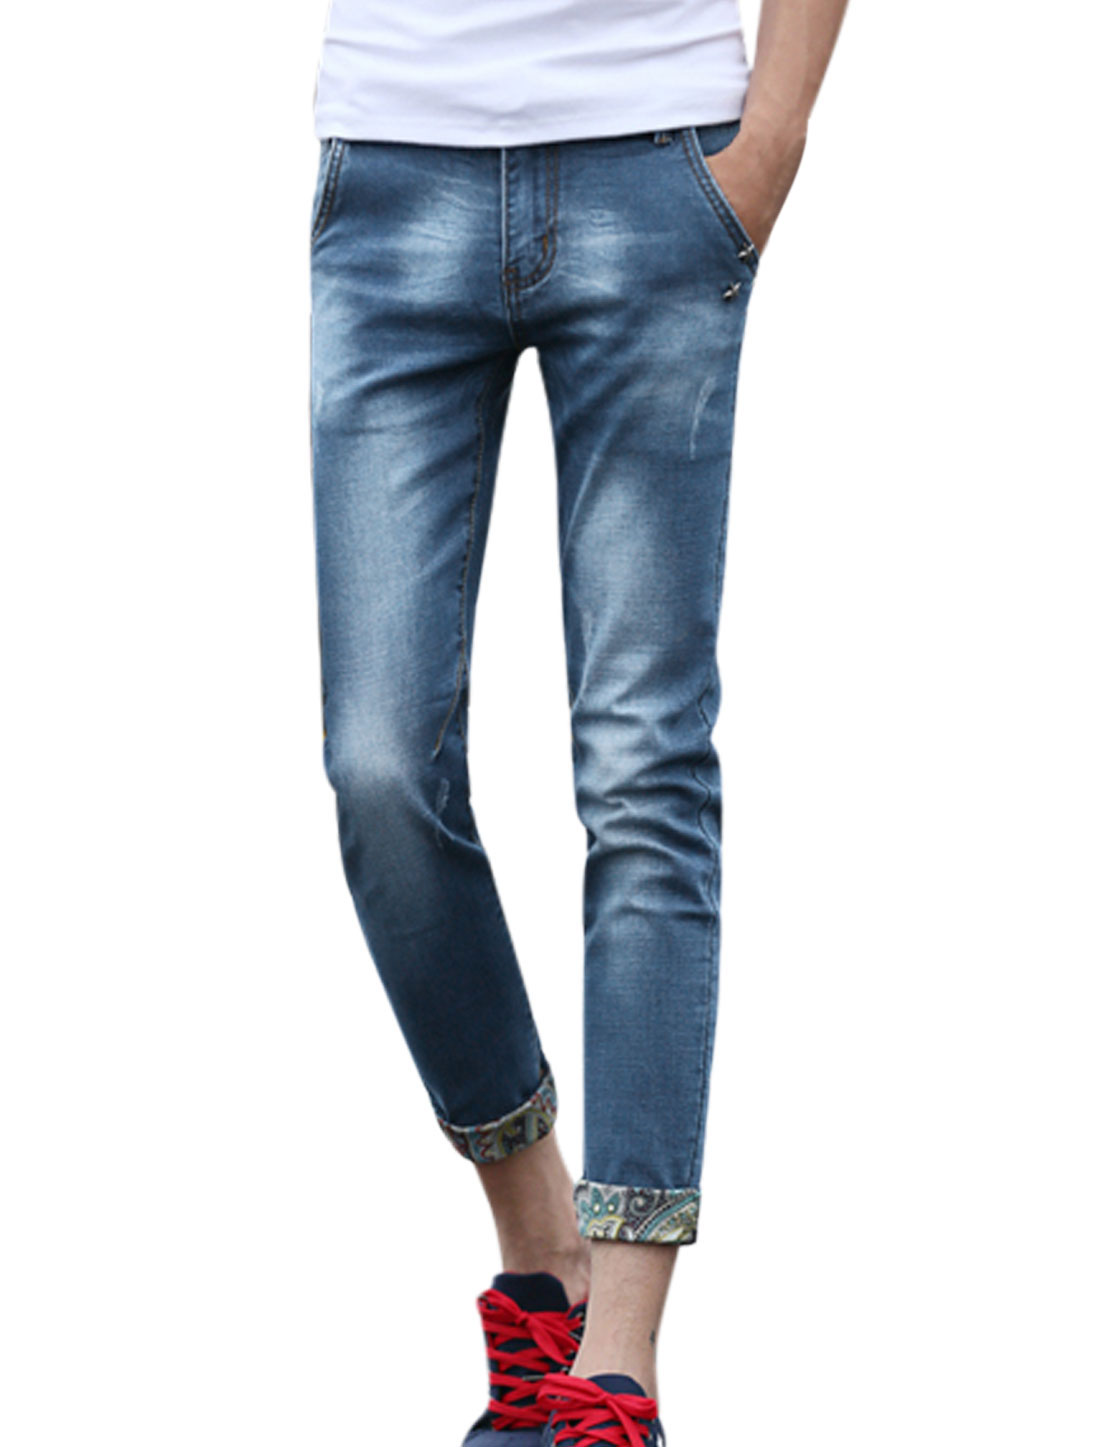 Men Novelty Prints Detail Two Slant Pockets Skinny Cropped Jeans Blue